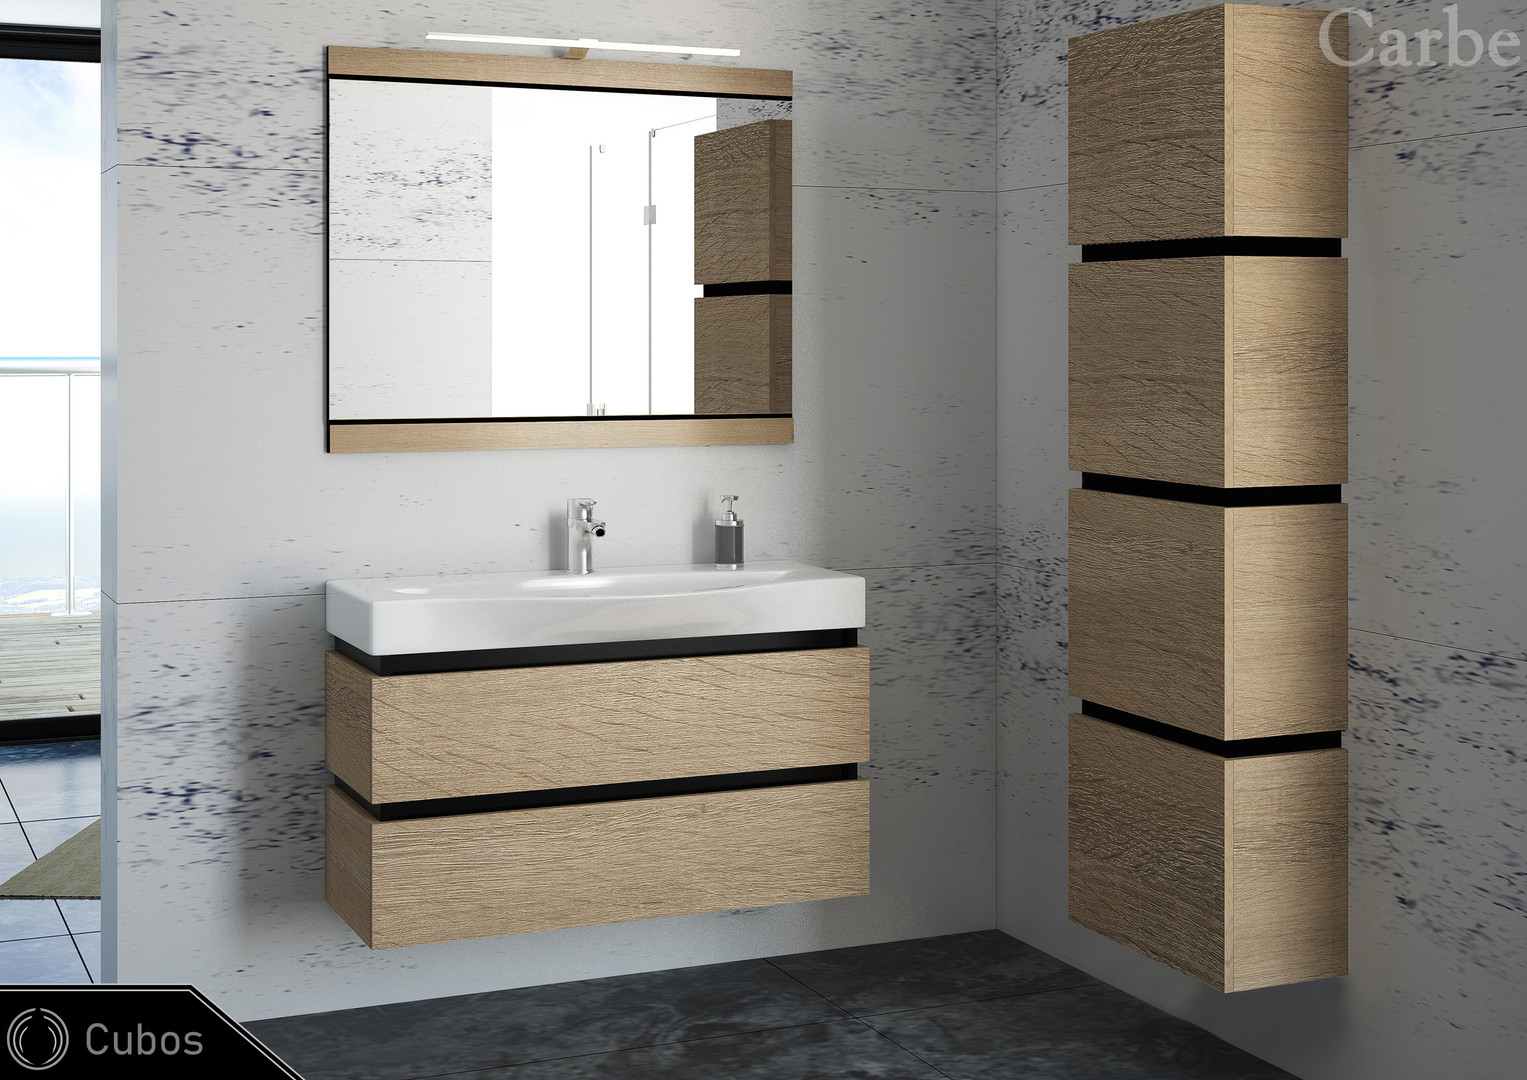 Cubos - Oak Bardolino Grey, Ceramic Washbasin, Soft Closing